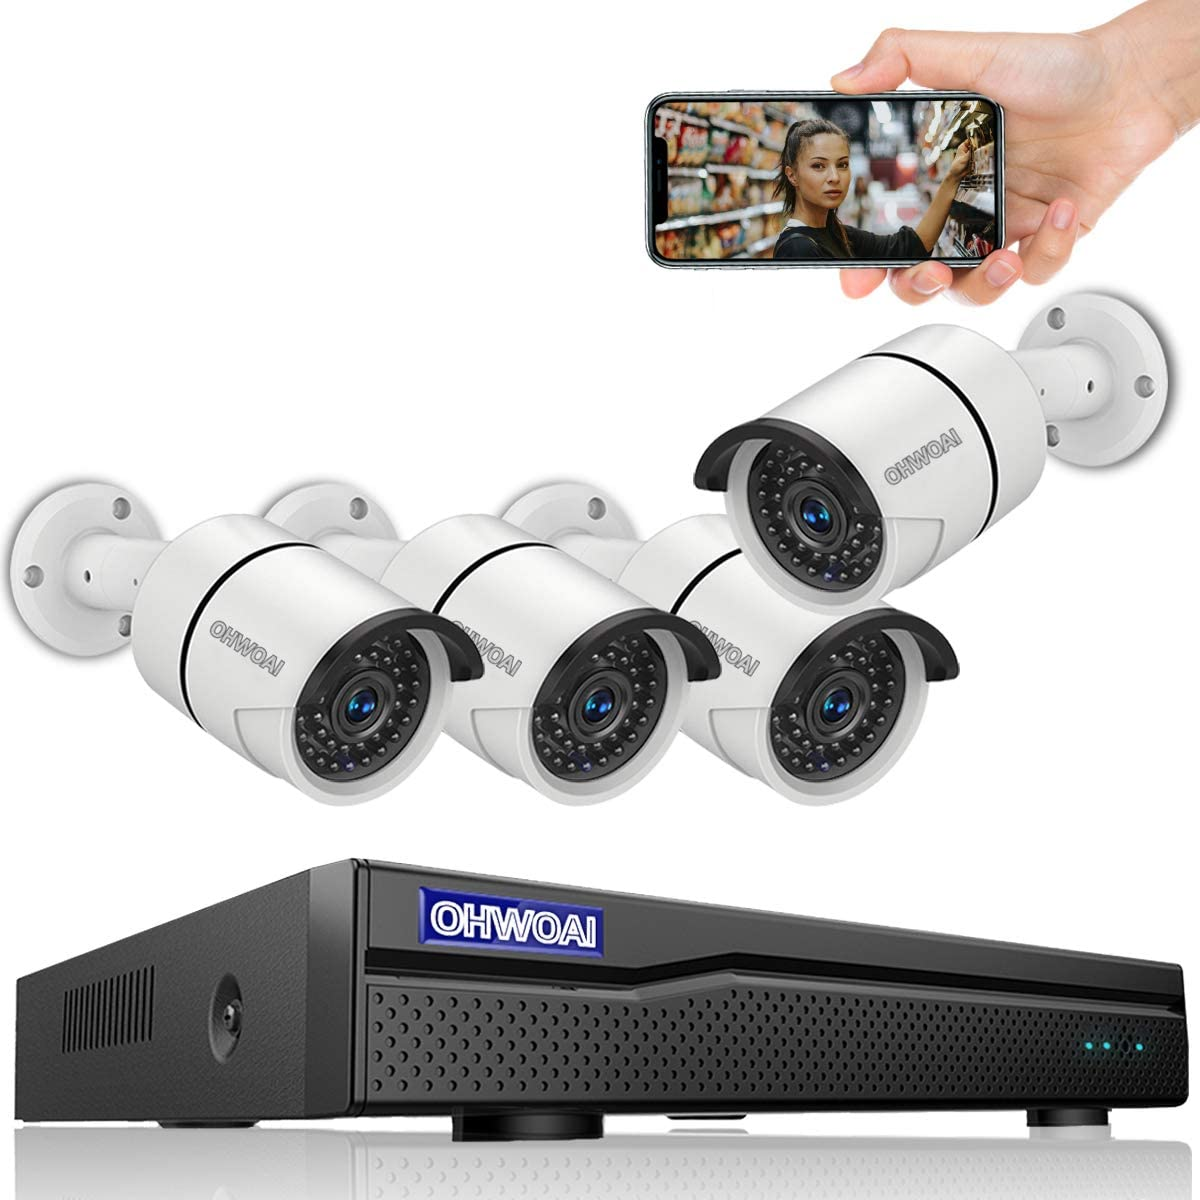 【8CH 5MP DVR】 Wired 8ch Home Security Camera Outdoor System,DVR Video Surveillance Security Camera System,Surveillance DVR Kits,4pcs 1080p Security Camera Outdoor Wired,APP, NO Hard Drive